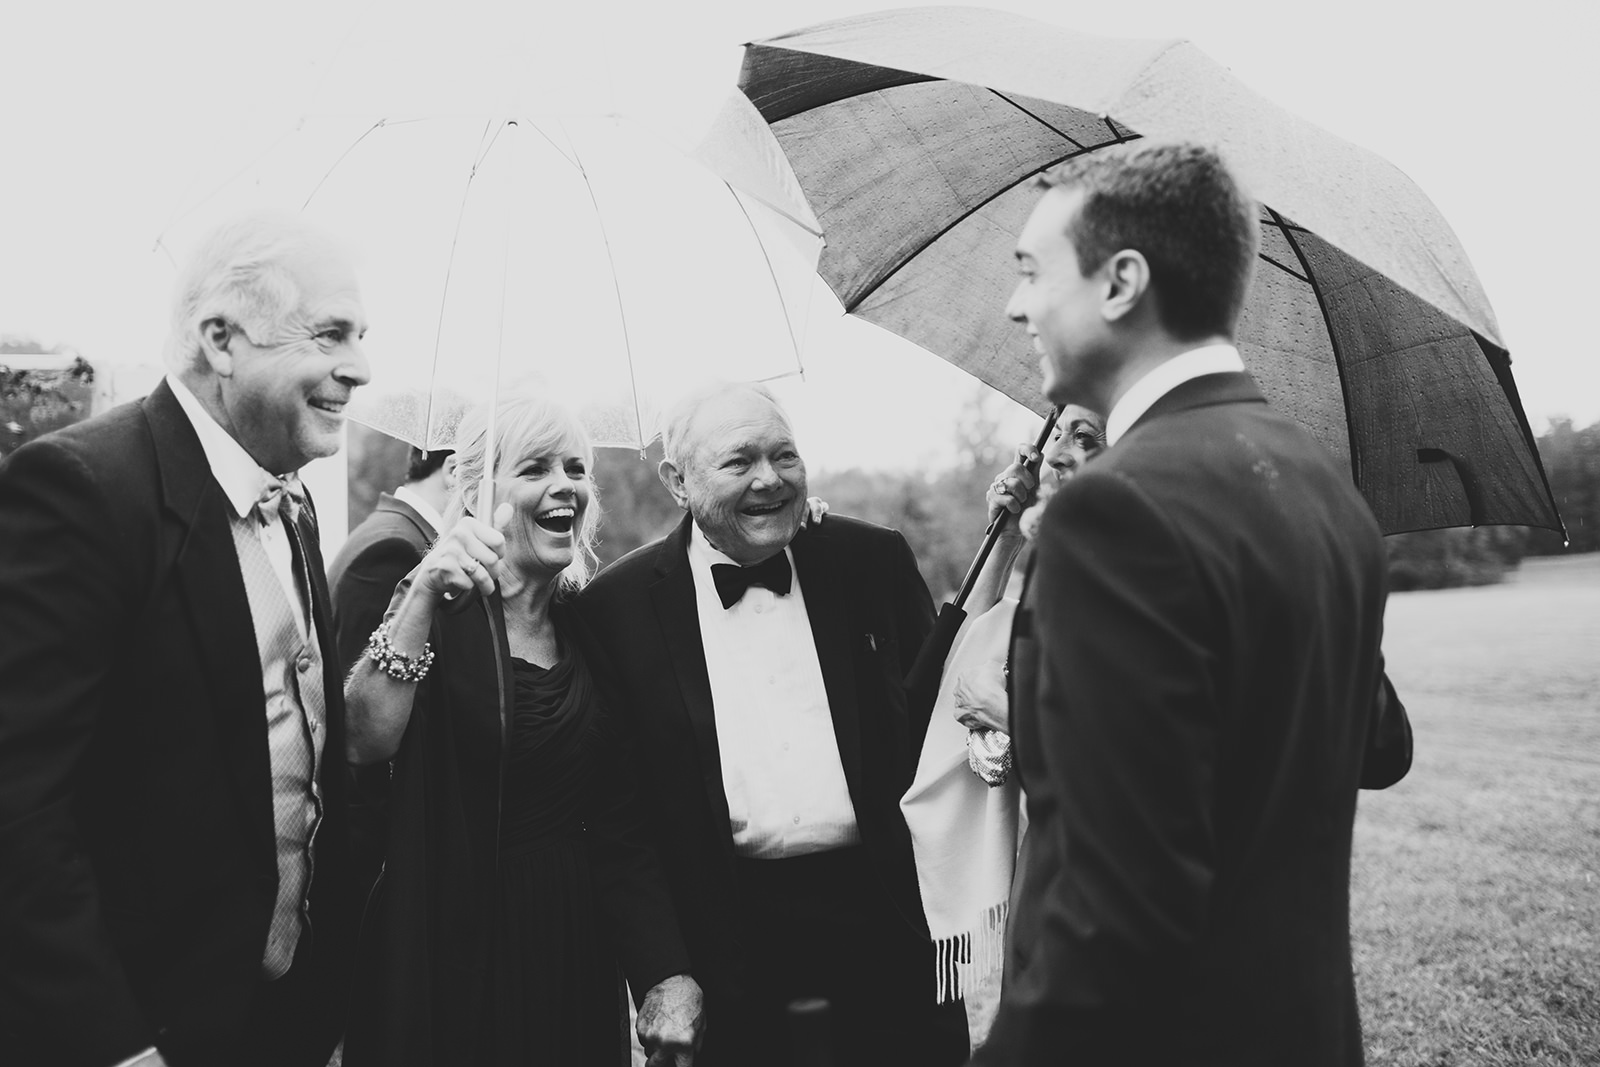 rainy-wedding-photos-12